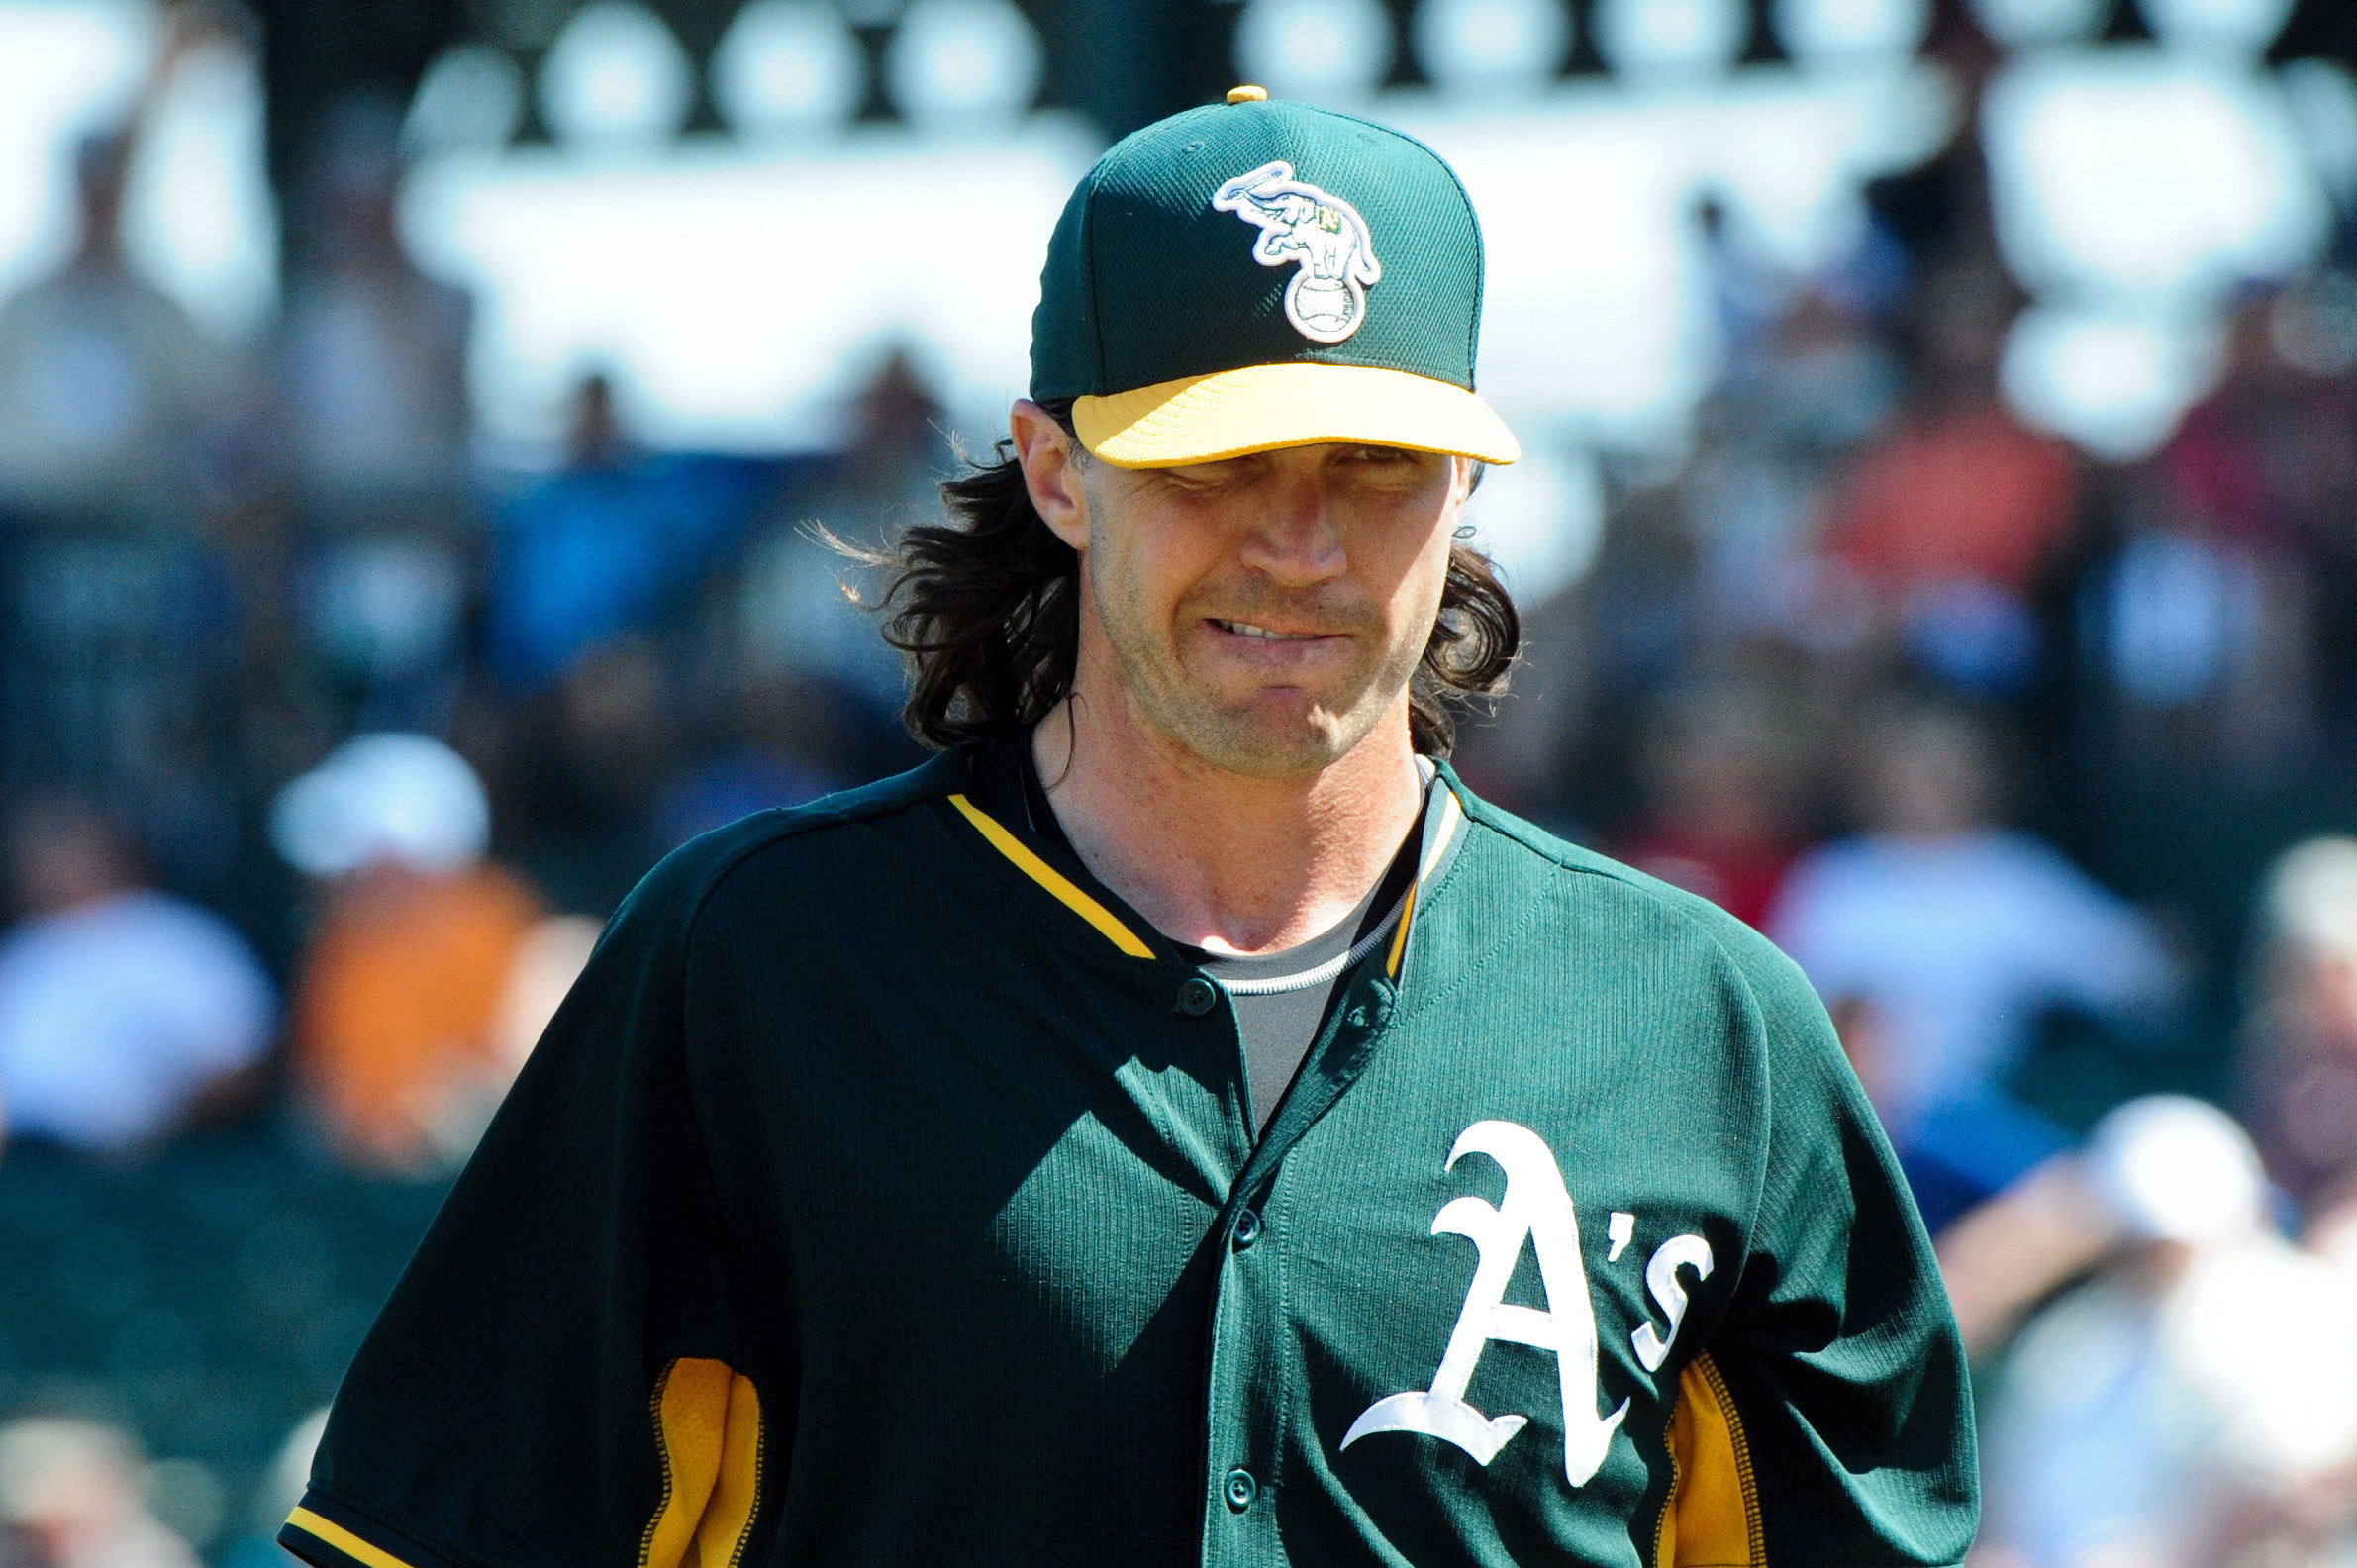 Barry Zito did not do so great.